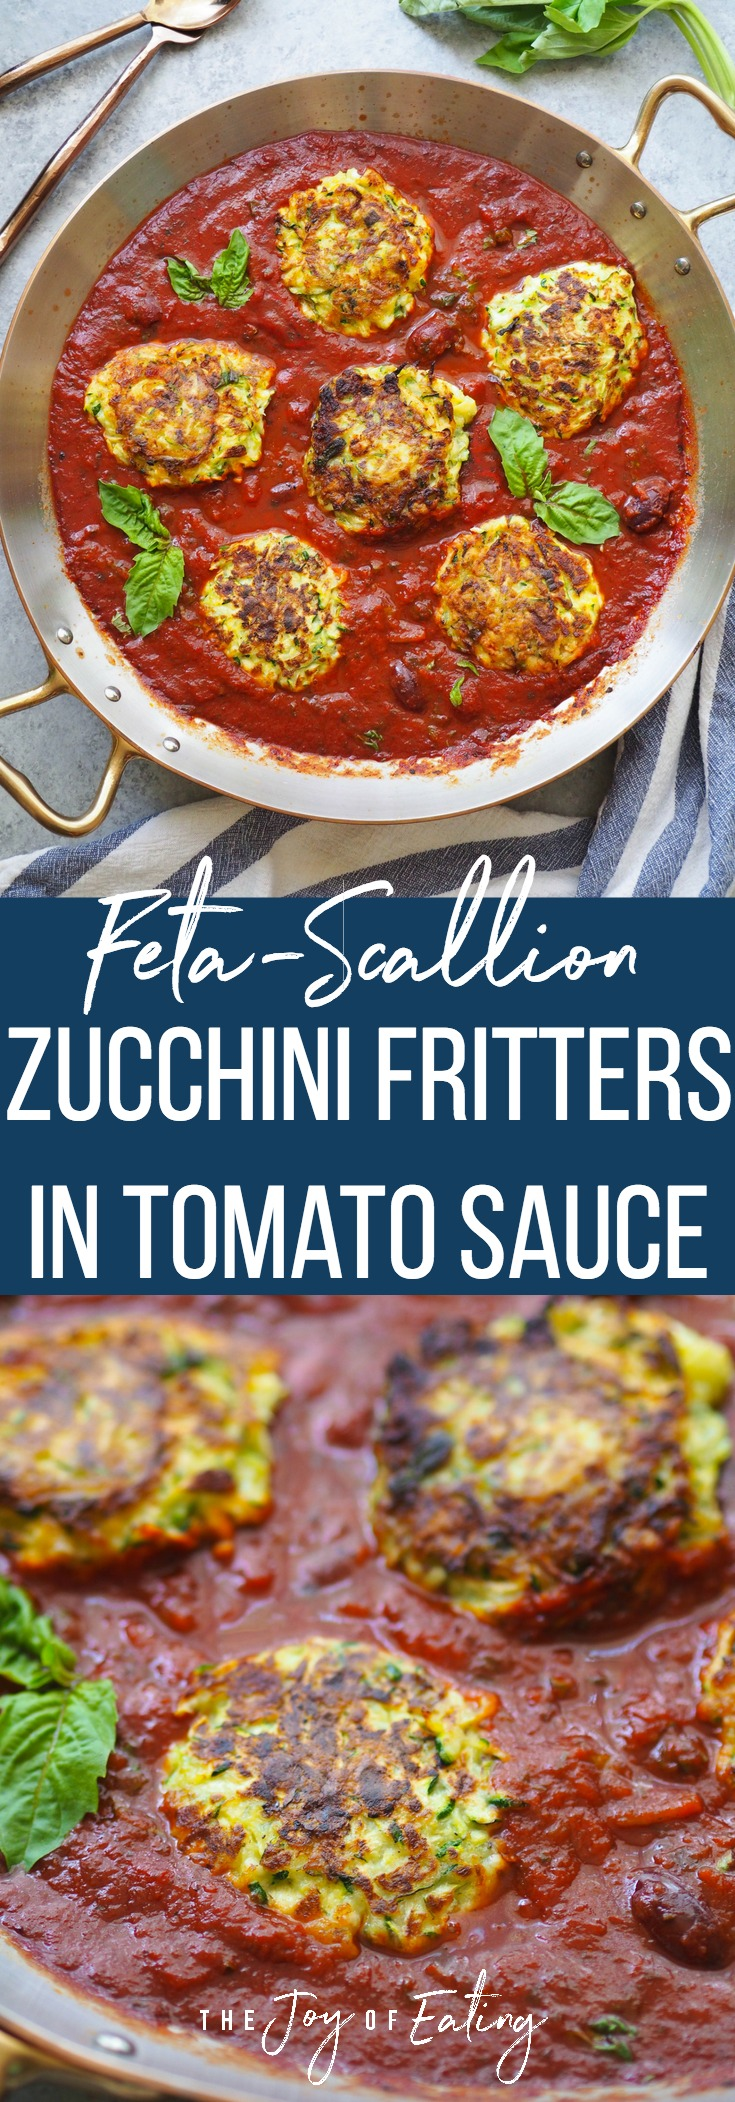 Use up your summer zucchini with this recipe for feta-scallion zucchini fritters in a tomato olive sauce! Perfect summer dinner paired with rice, pasta or other grain! #summer #zucchini #easyrecipe #vegetarian #glutenfree